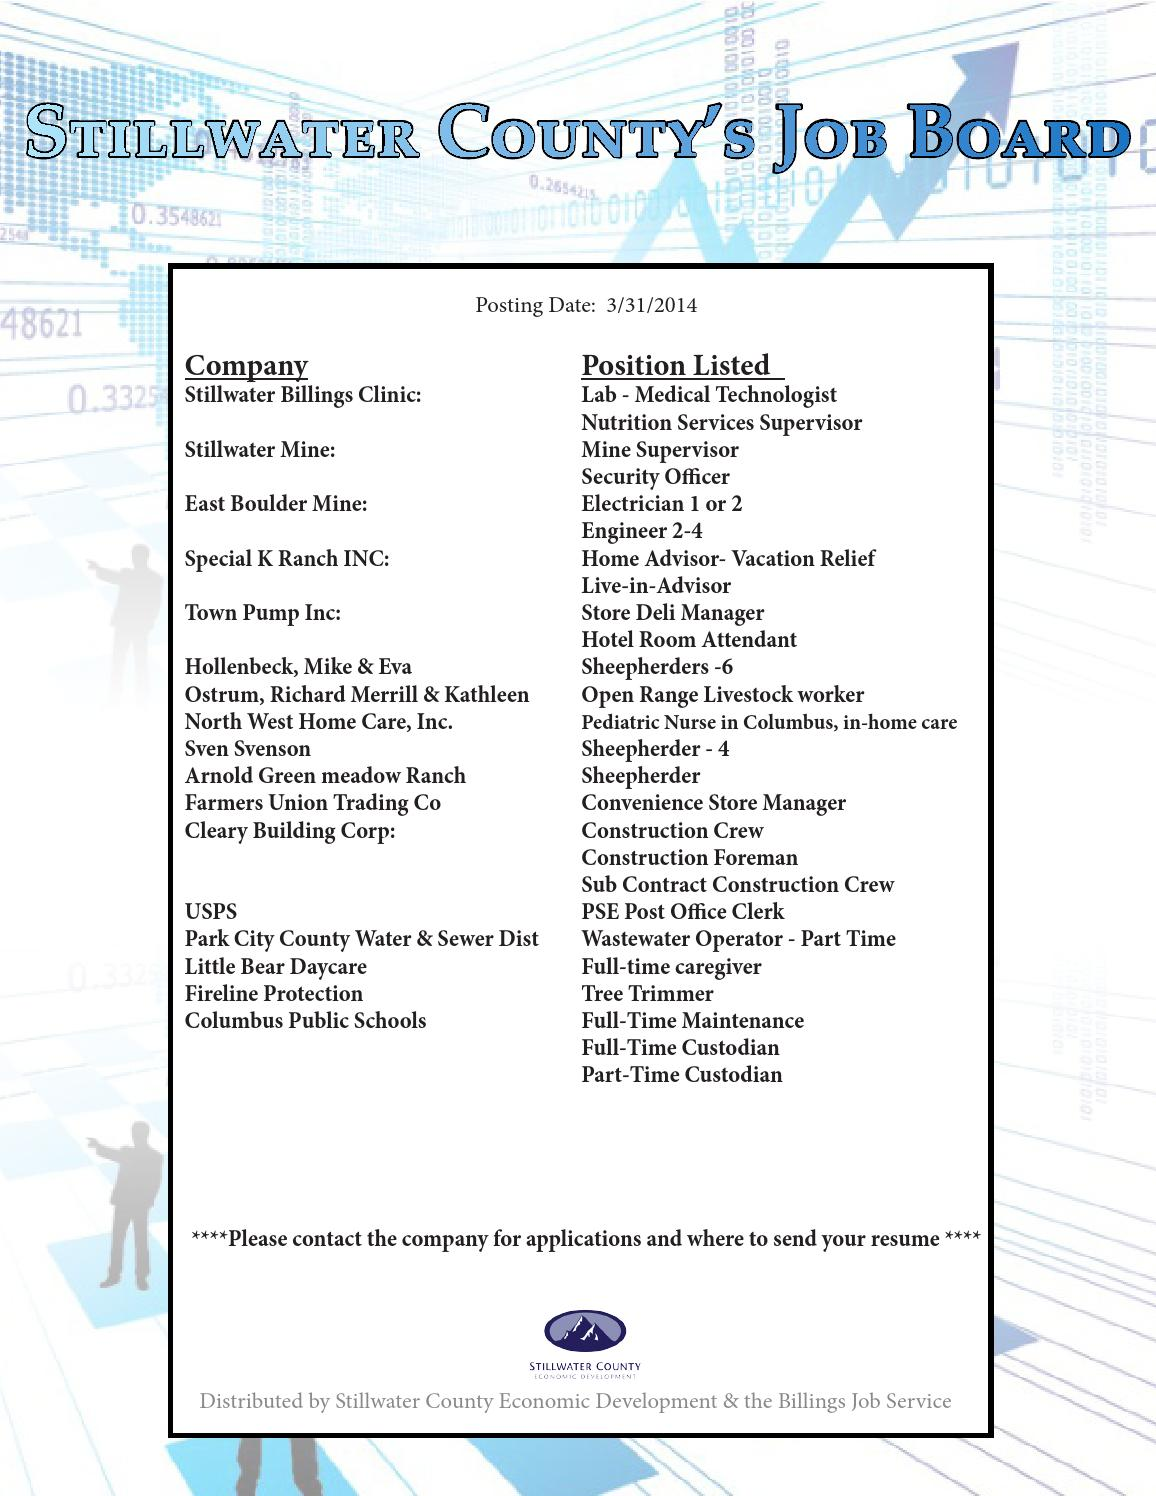 Stillwater county job board by marissa plumb issuu for Live in caregiver room and board